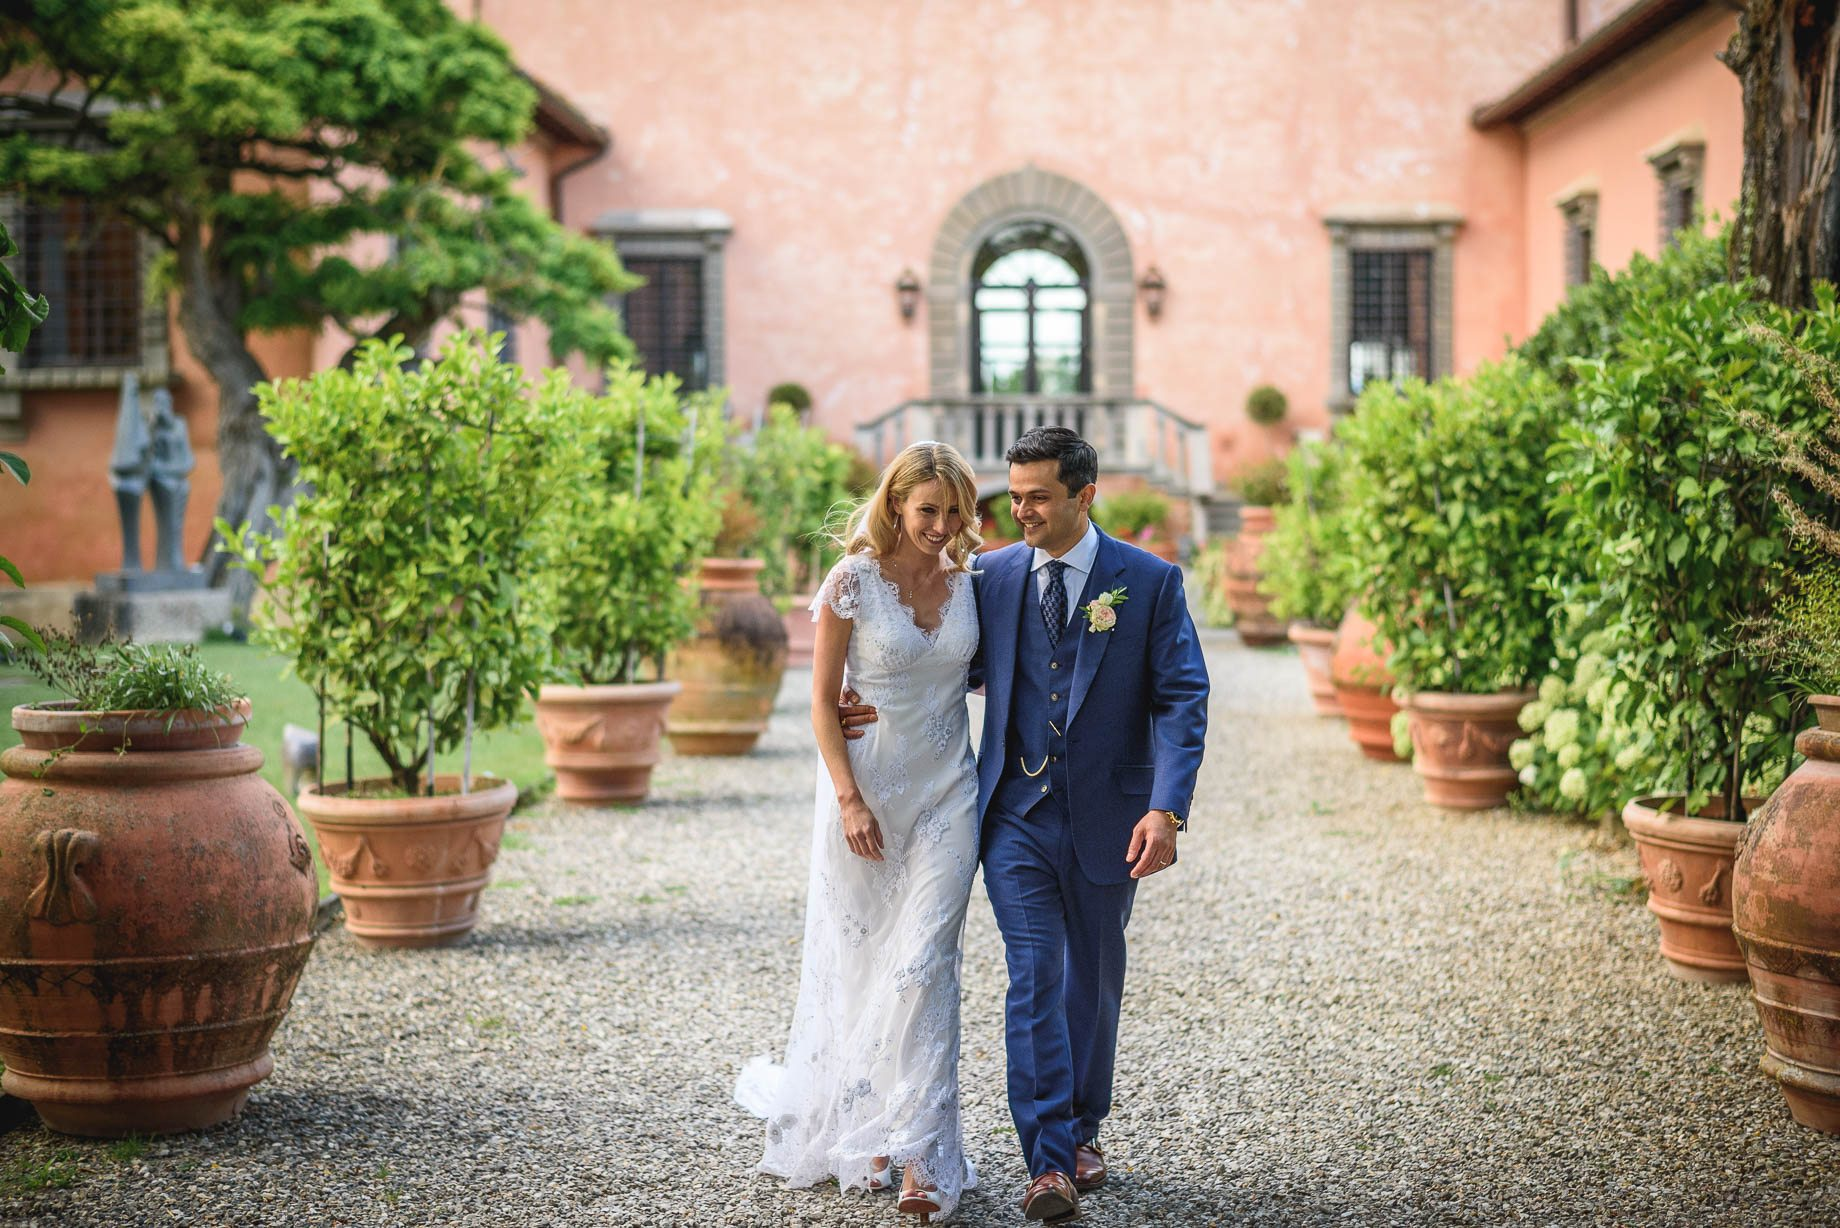 Tuscany wedding photography - Roisin and Moubin - Guy Collier Photography (141 of 251)